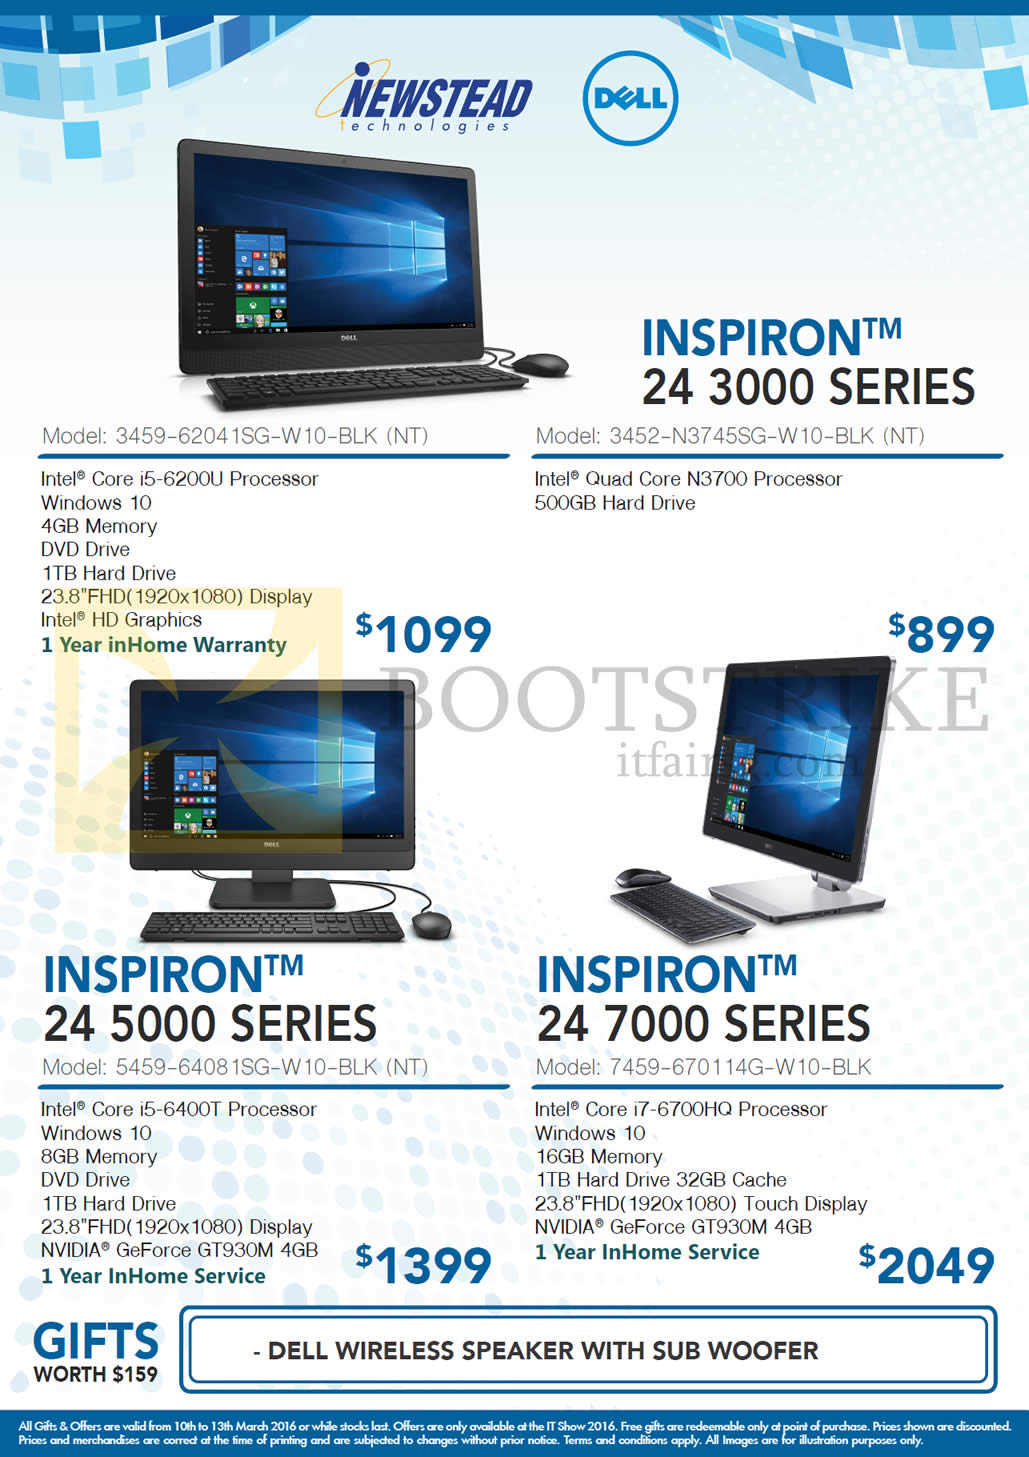 it show price list image brochure of dell newstead desktop pcs aio inspiron